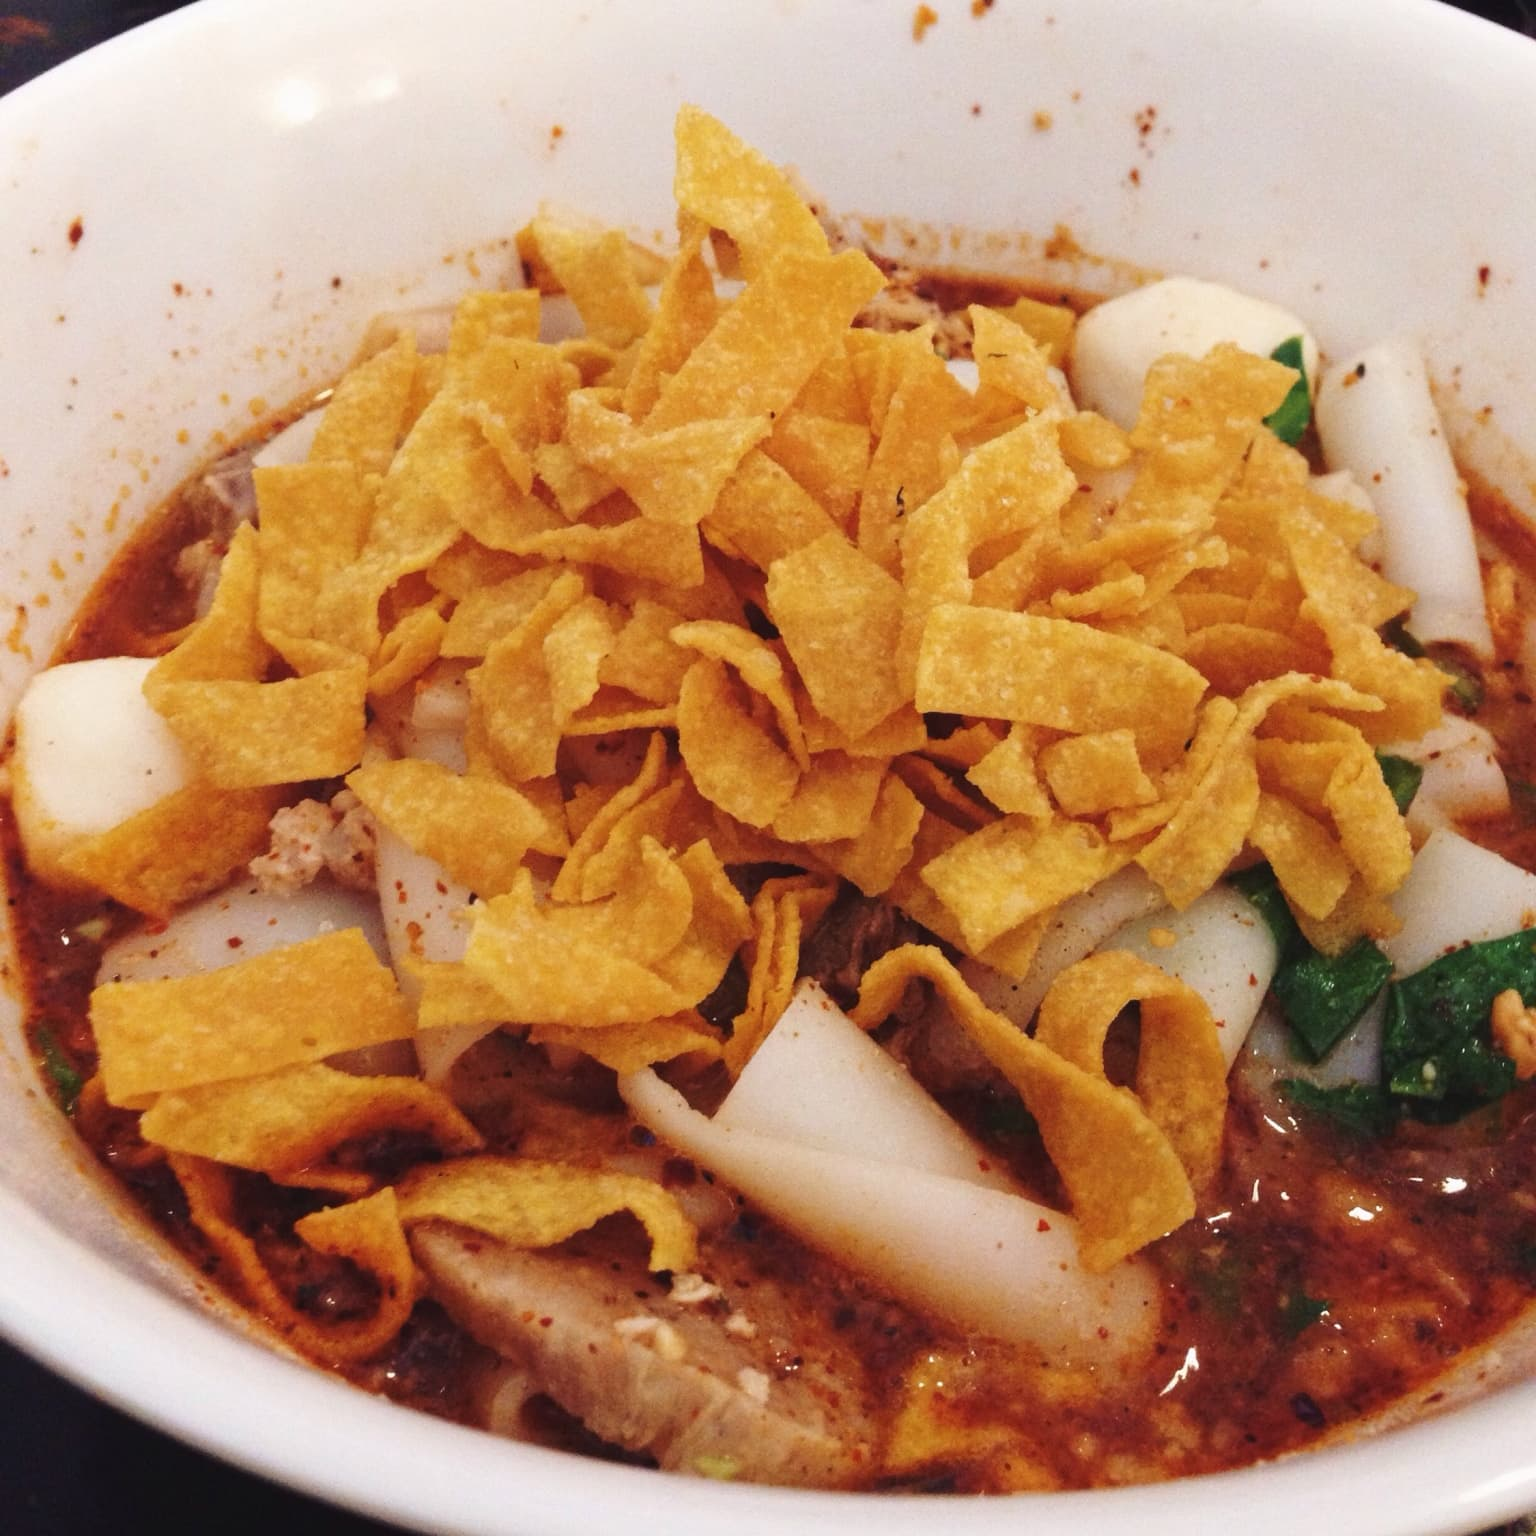 1 x Dodee Noodle Soup Jumbo at Do Dee Paidang Thai - Get Deals, Cashback and Rewards with ShopBack GO